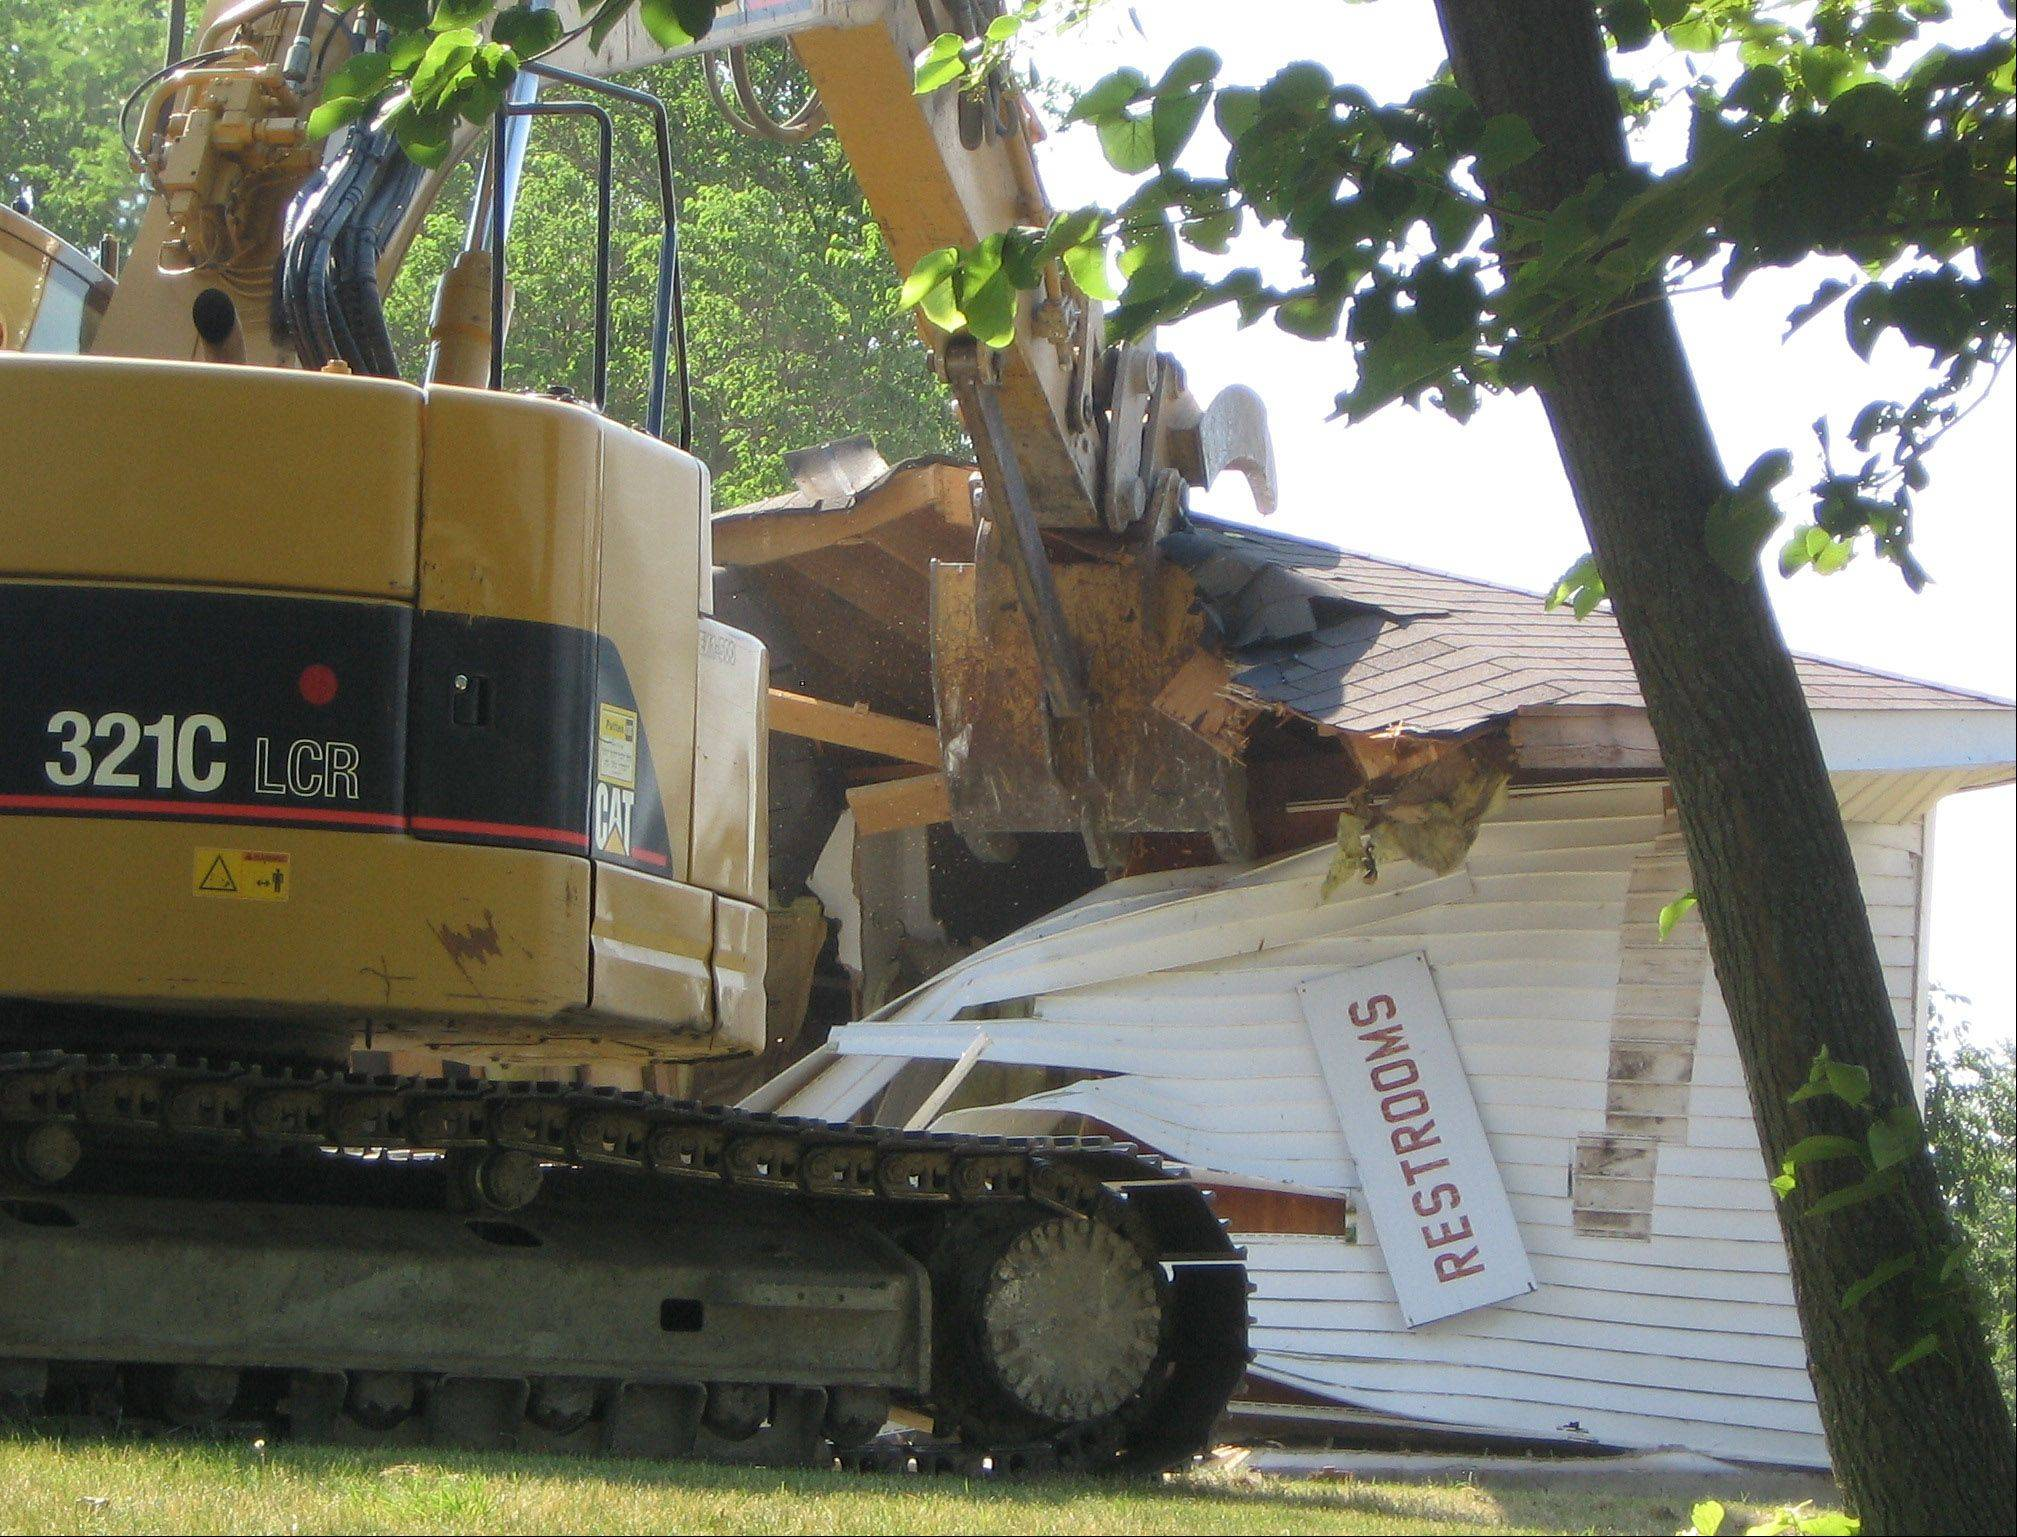 An old restroom facility in Morrison Park in Lakemoor was demolished Tuesday and will be replaced as part of an improvement plan for the lakefront park.